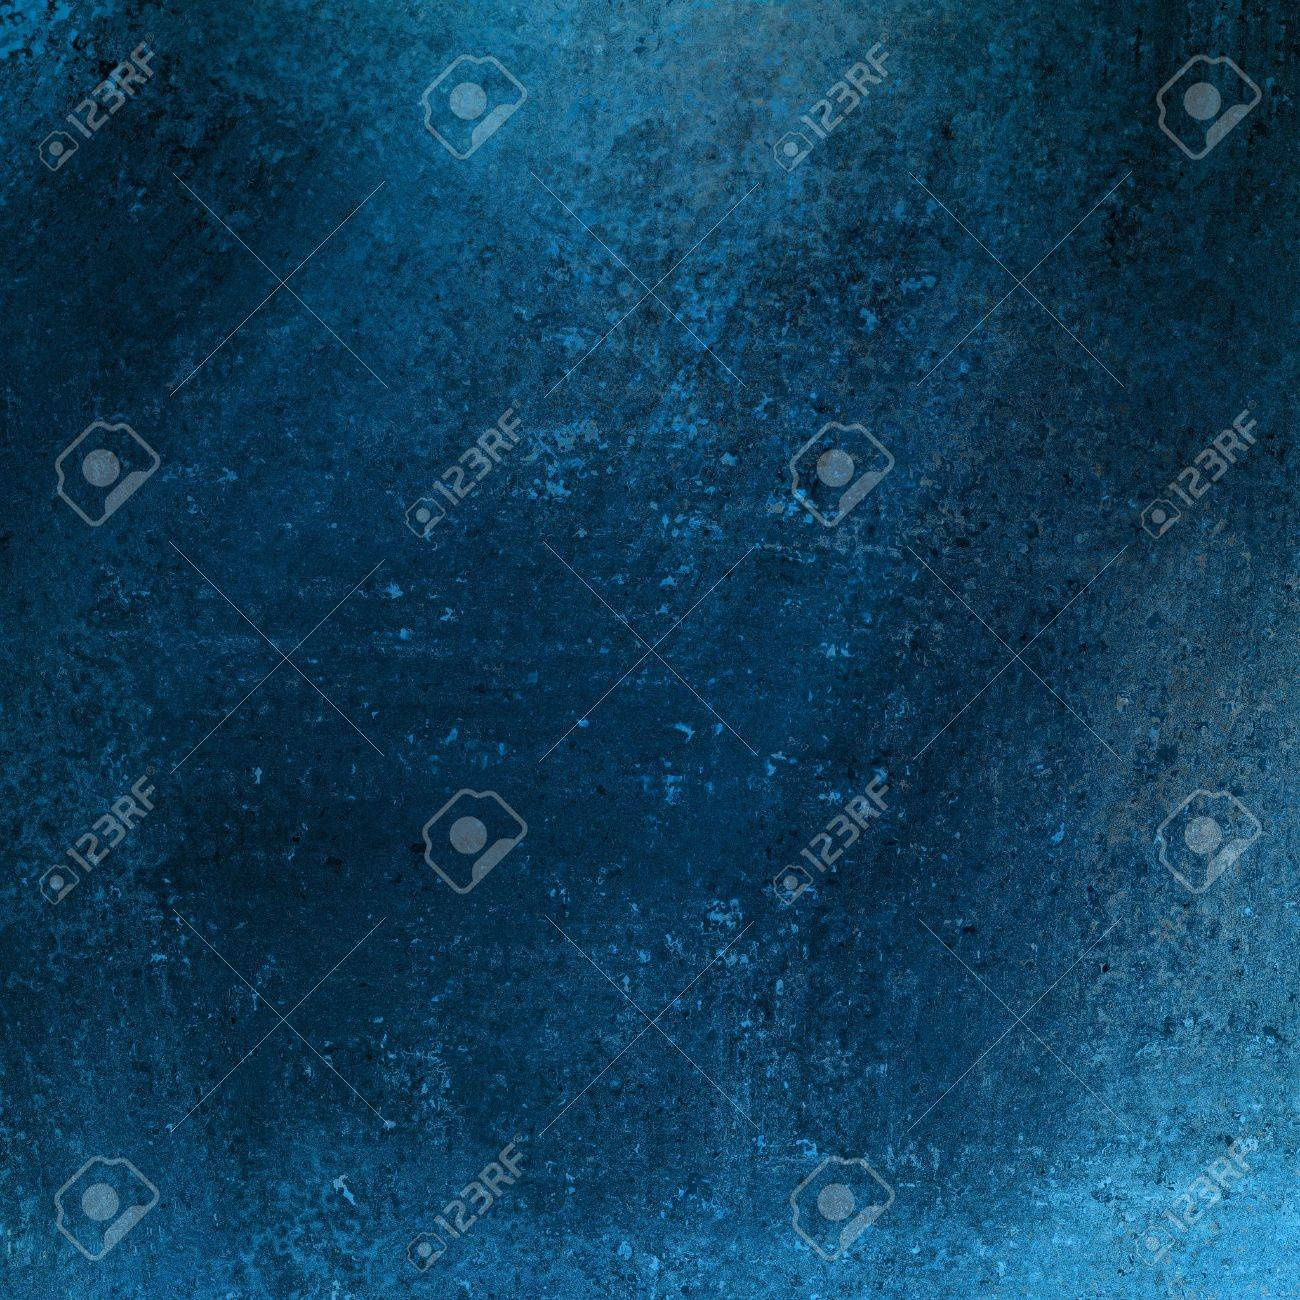 solid blue background abstract distressed antique dark background texture and grunge black edges on elegant wallpaper design, fancy painted background ad material with light blue backdrop color layout Stock Photo - 17116246